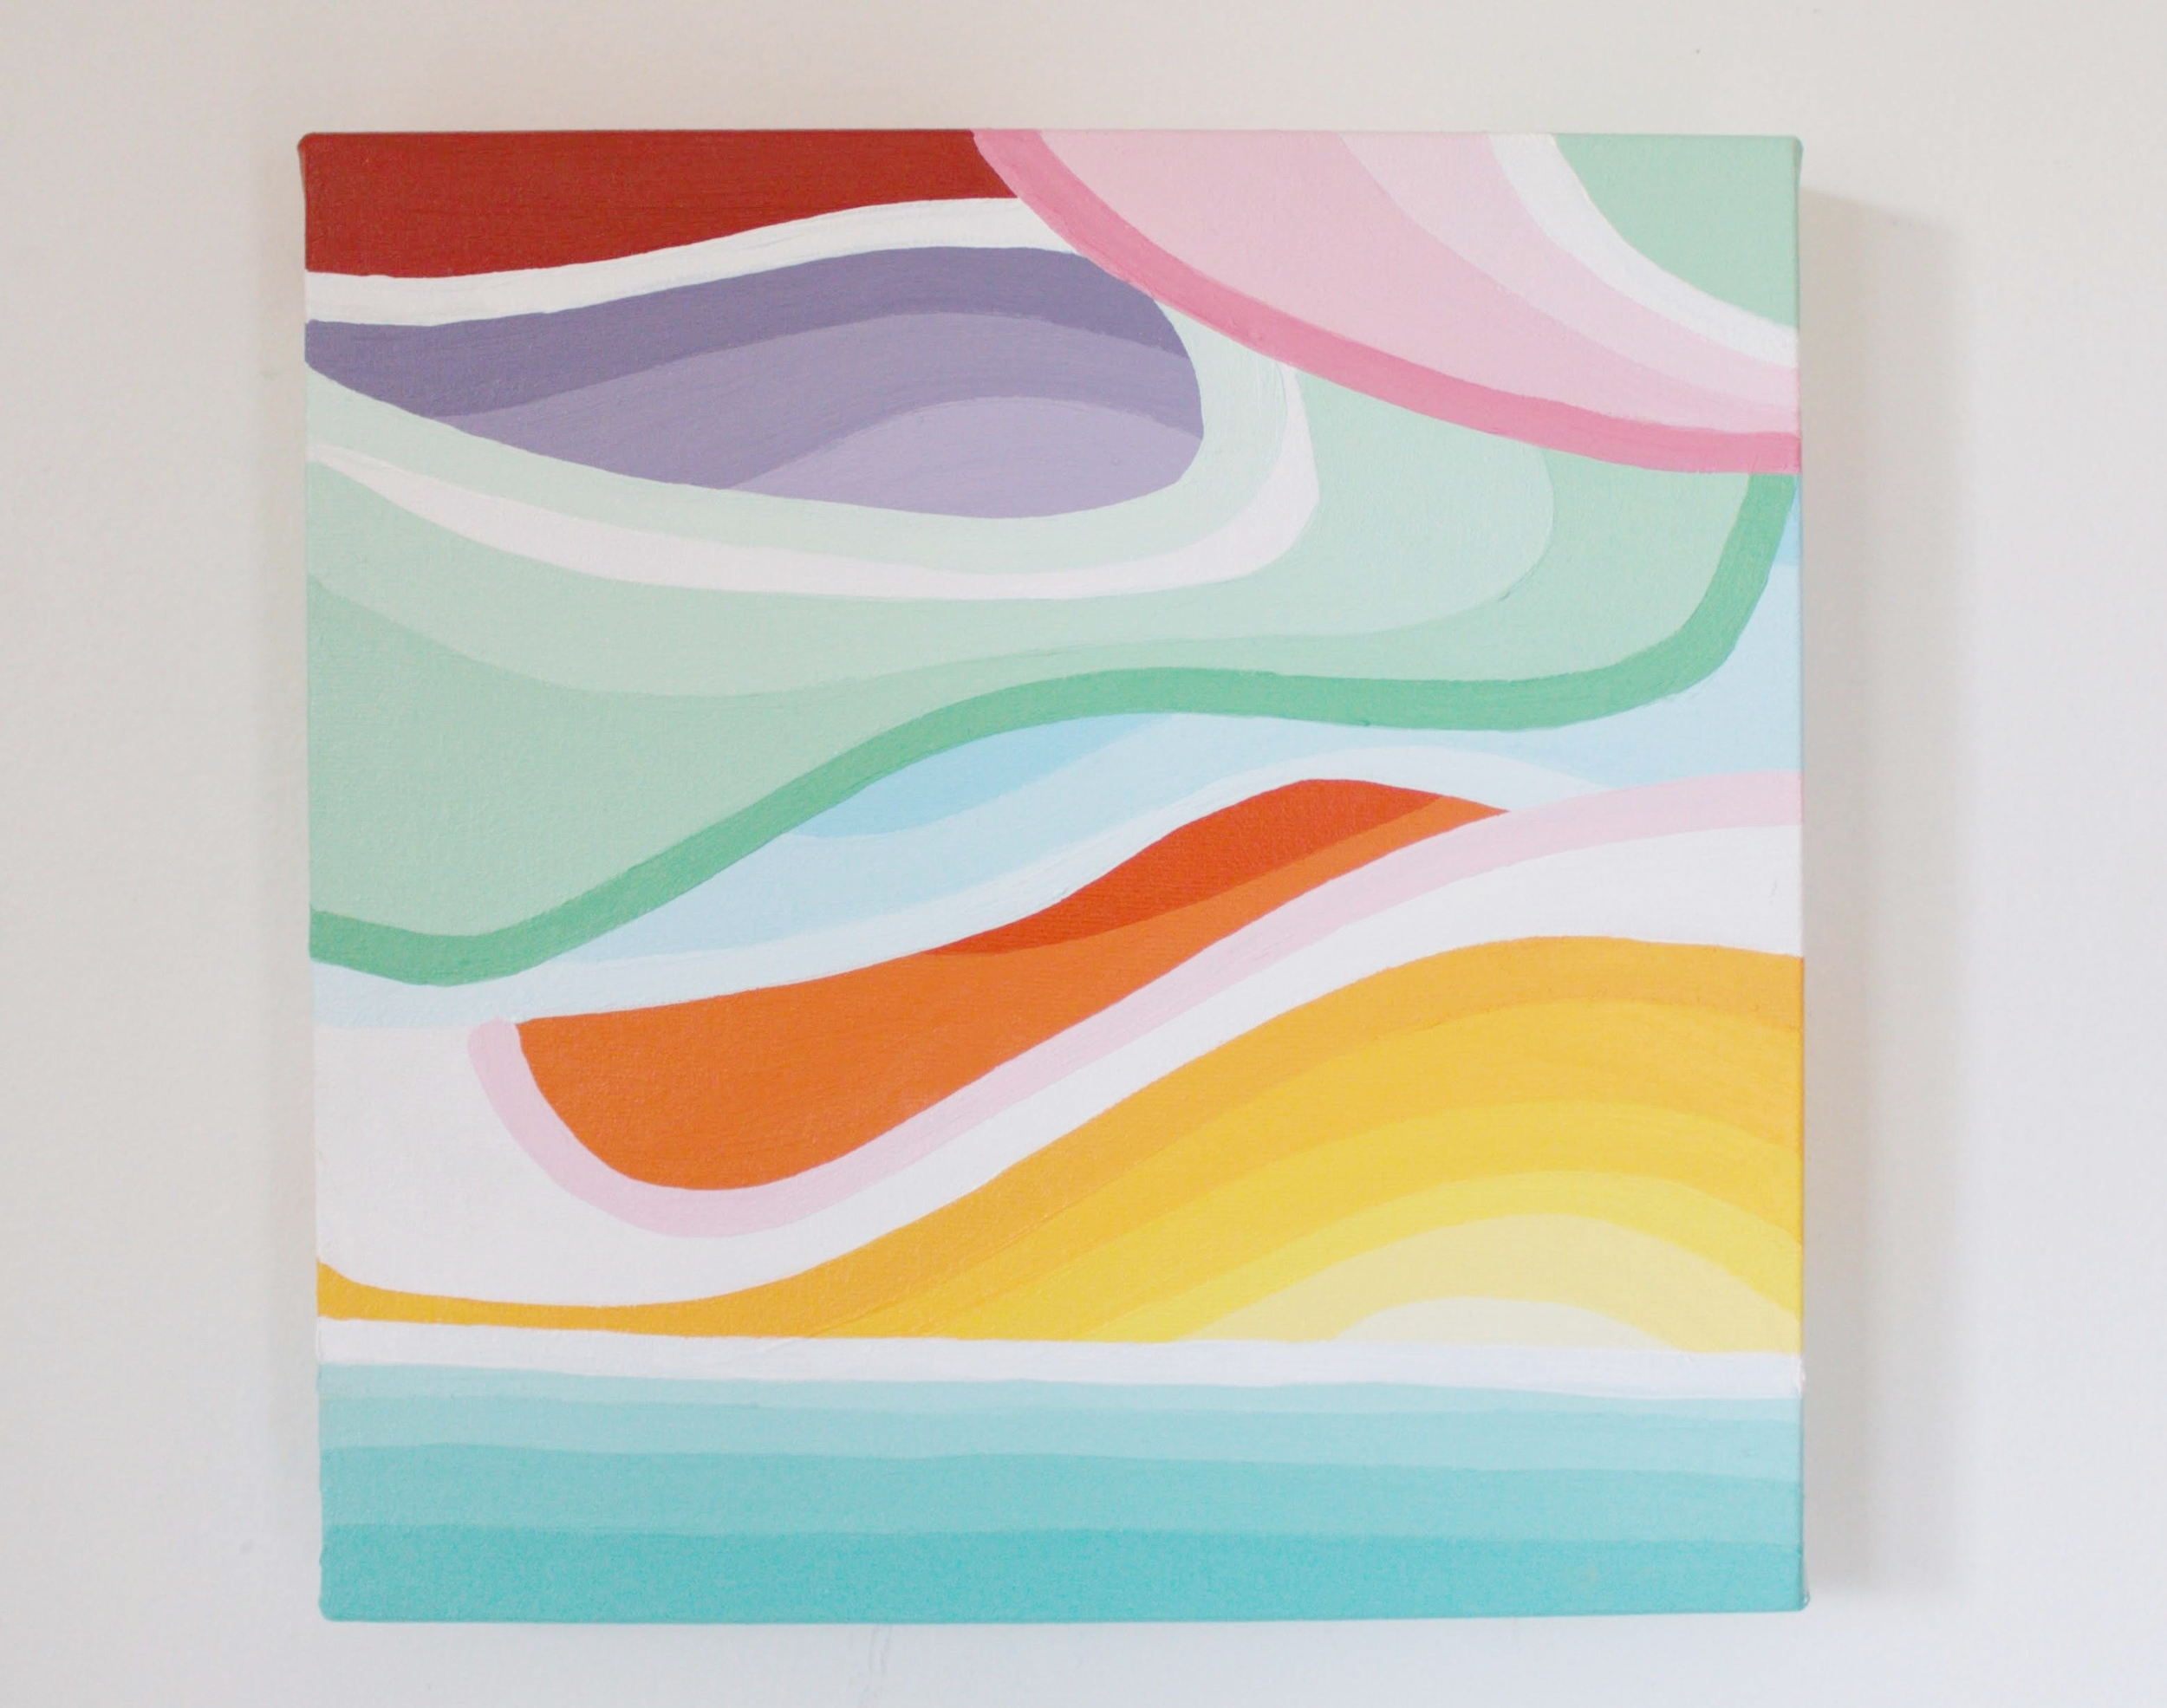 "Coast Sunset - Size: 10"" x 10"" acrylic on canvasPrice: $125 shipping availableTO PURCHASE CLICK HERE"